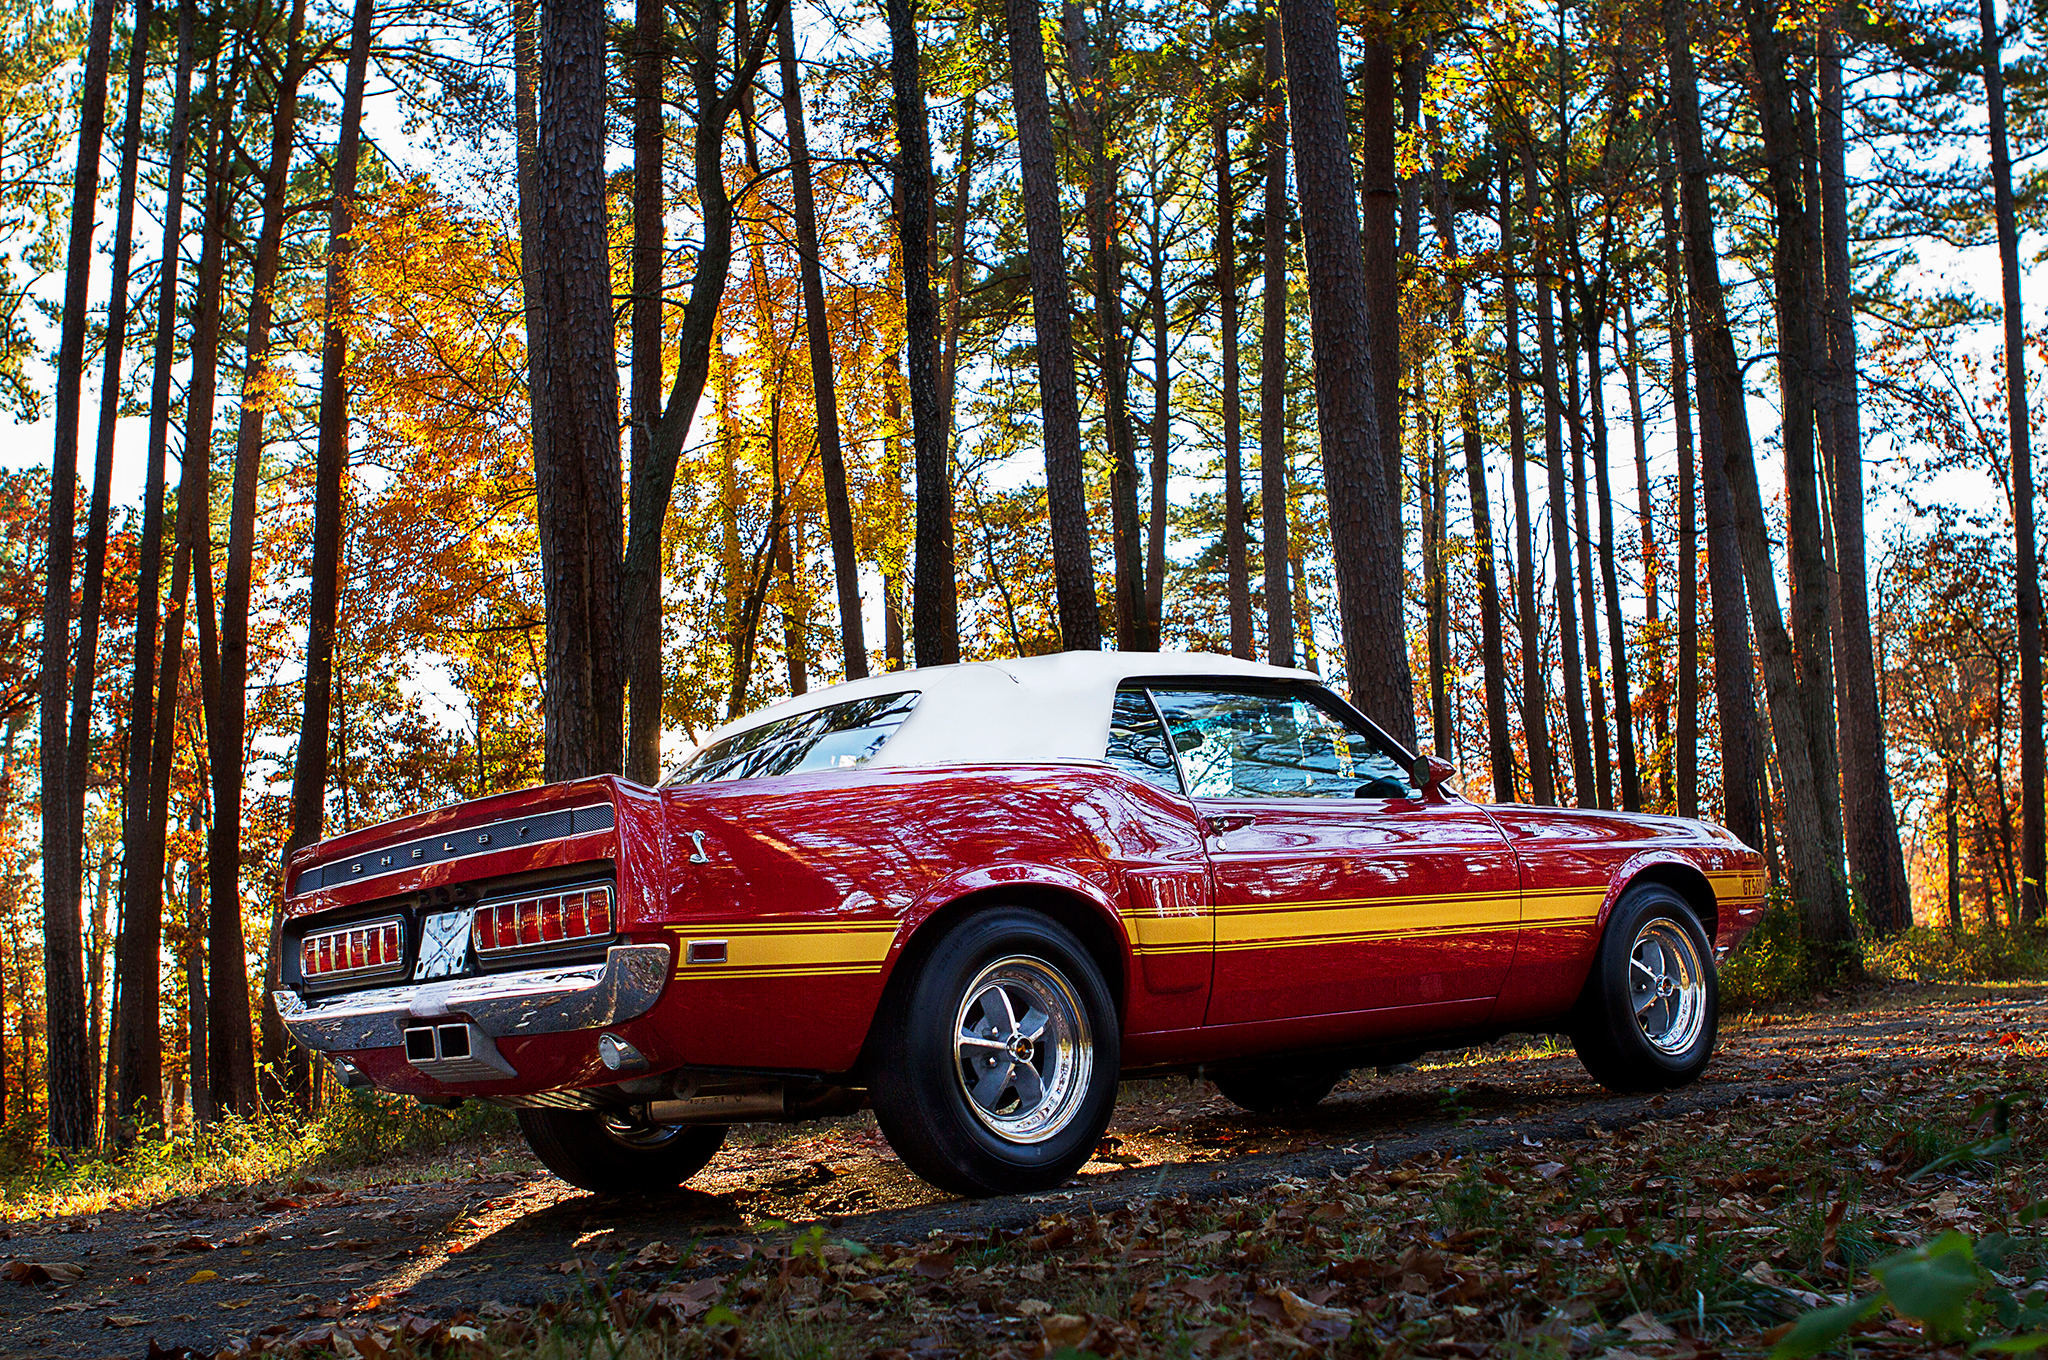 Hannah Way, a 21 year-old photographer from Texas, posed the Shelby with just the right amount of light in this location not far from the Billups restoration shop. Autumn in the Ozarks is amazing, as is this convertible Shelby. The Candyapple red paint with yellow stripes blends in well with the fall leaves. Carroll would be proud of this restoration.